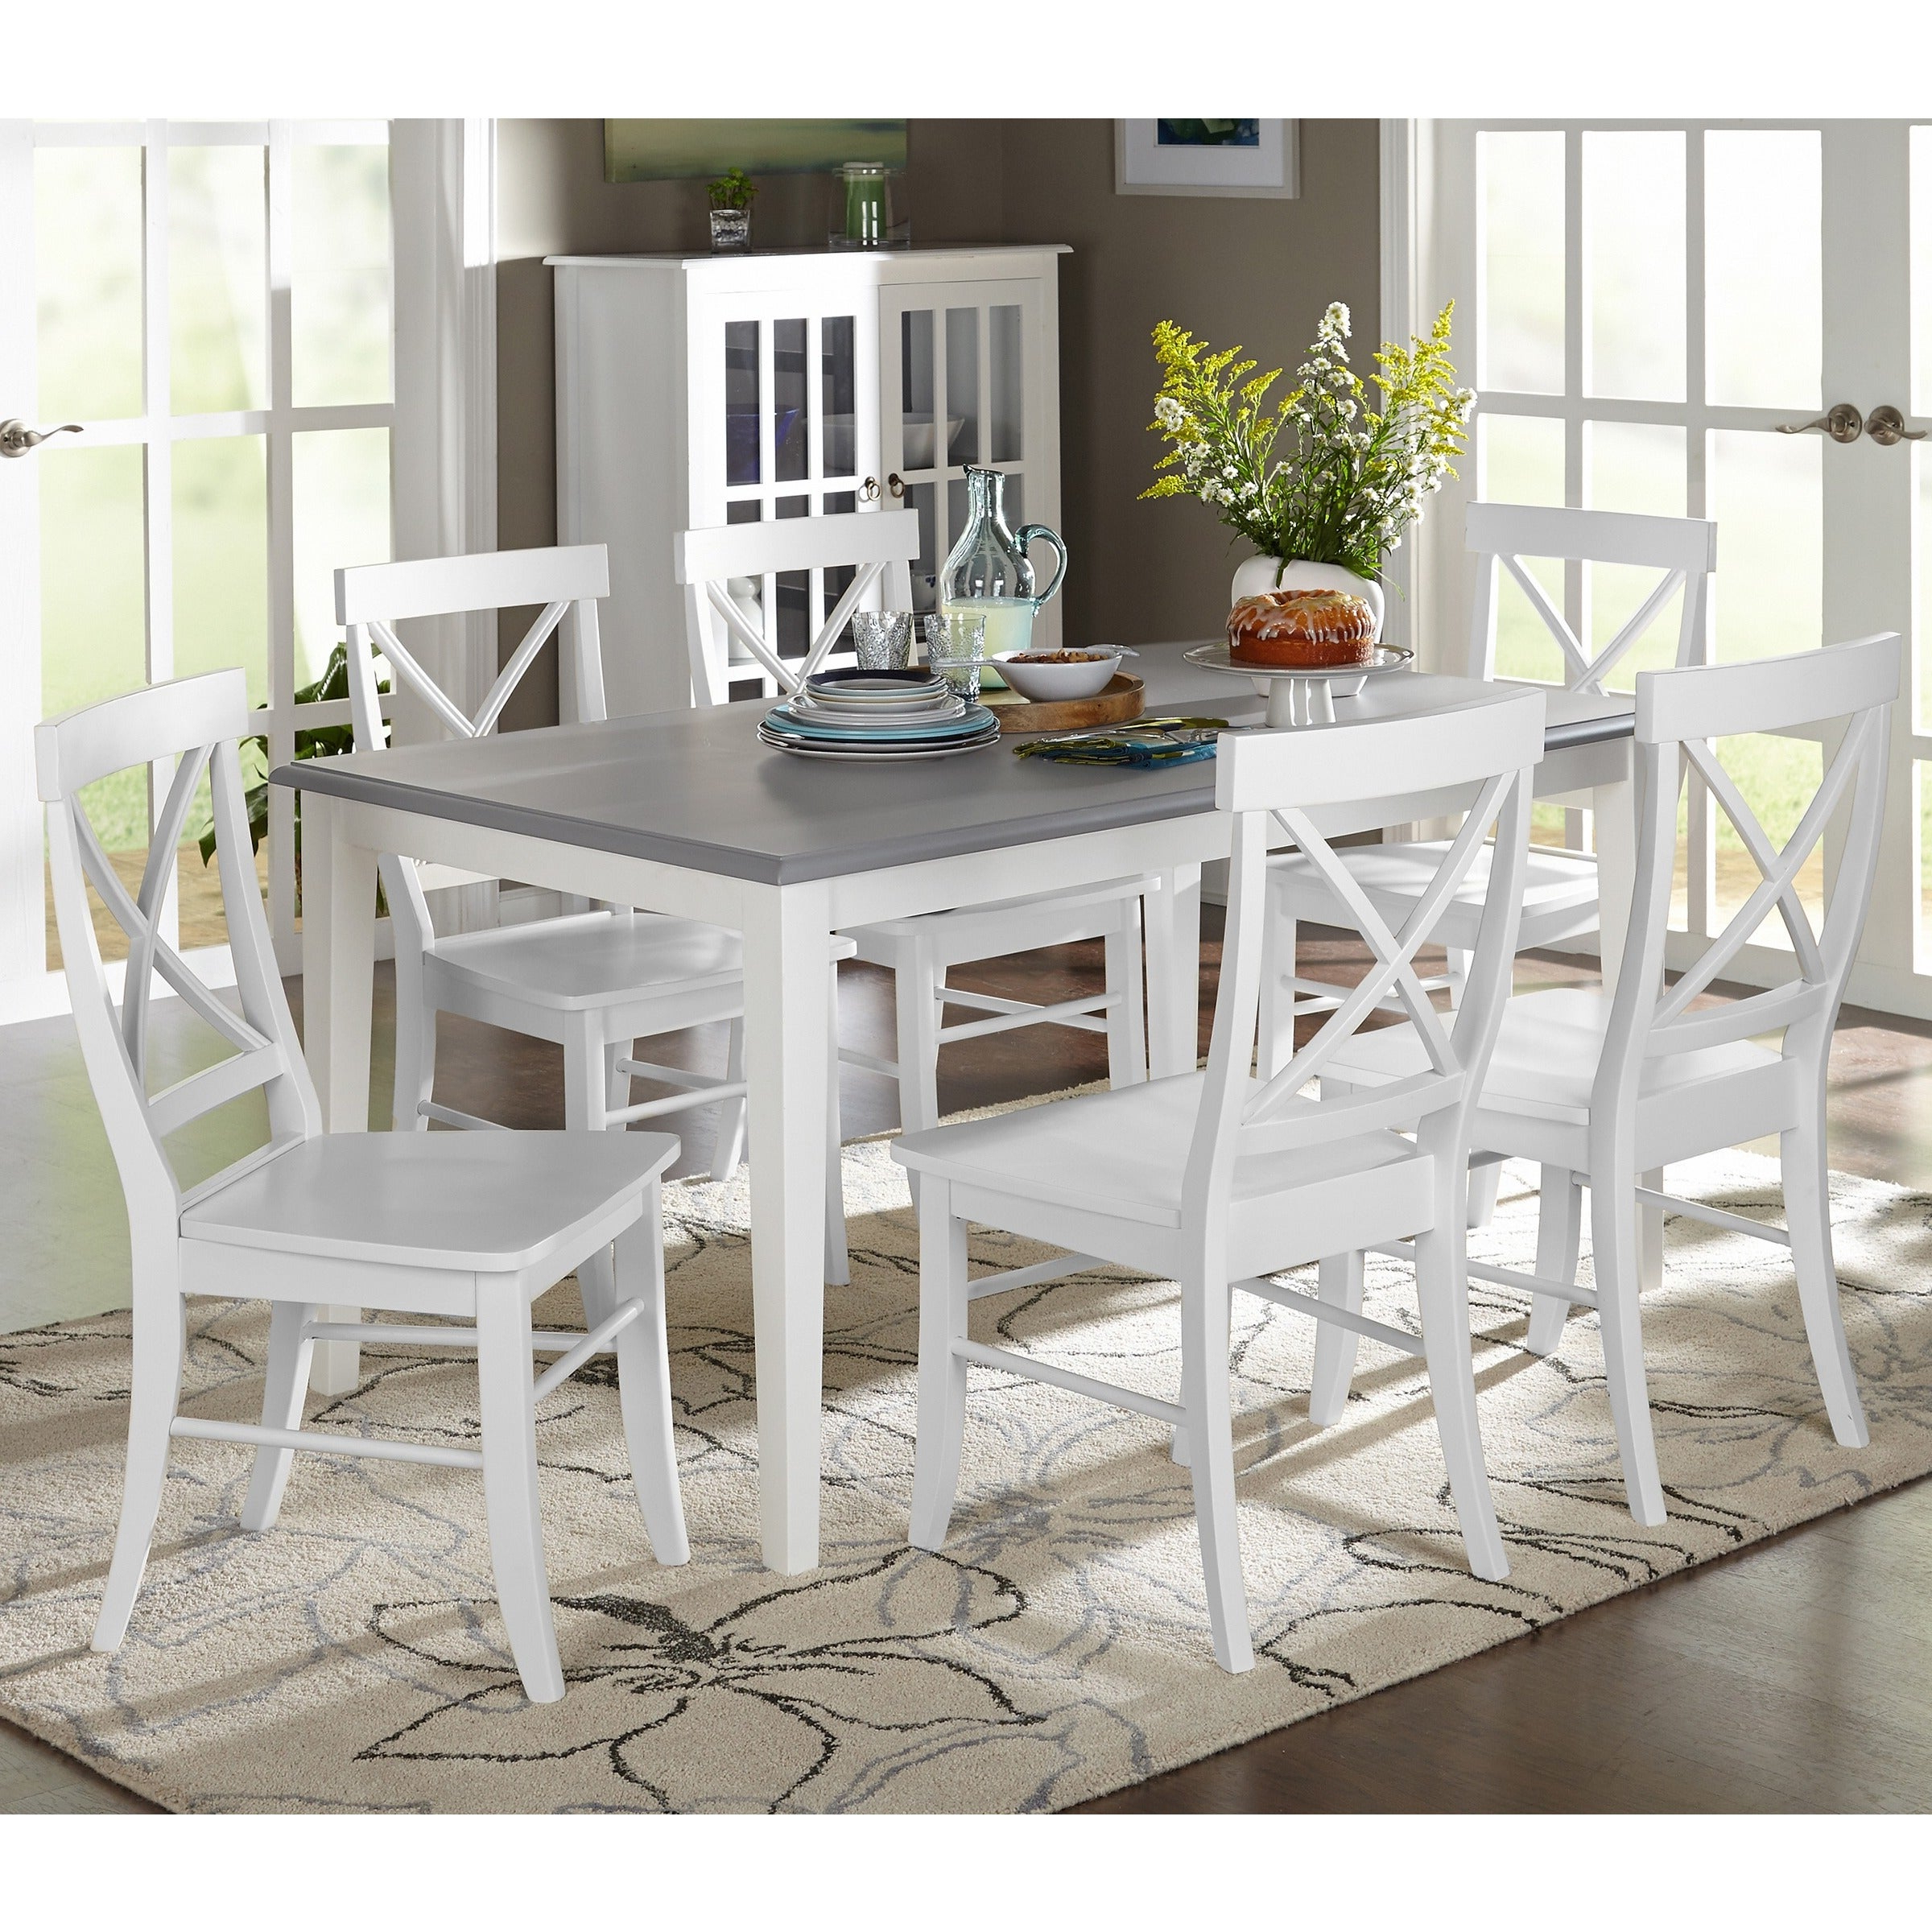 Autberry 5 Piece Dining Sets For Preferred Buy 7 Piece Sets Kitchen & Dining Room Sets Online At Overstock (Gallery 15 of 20)